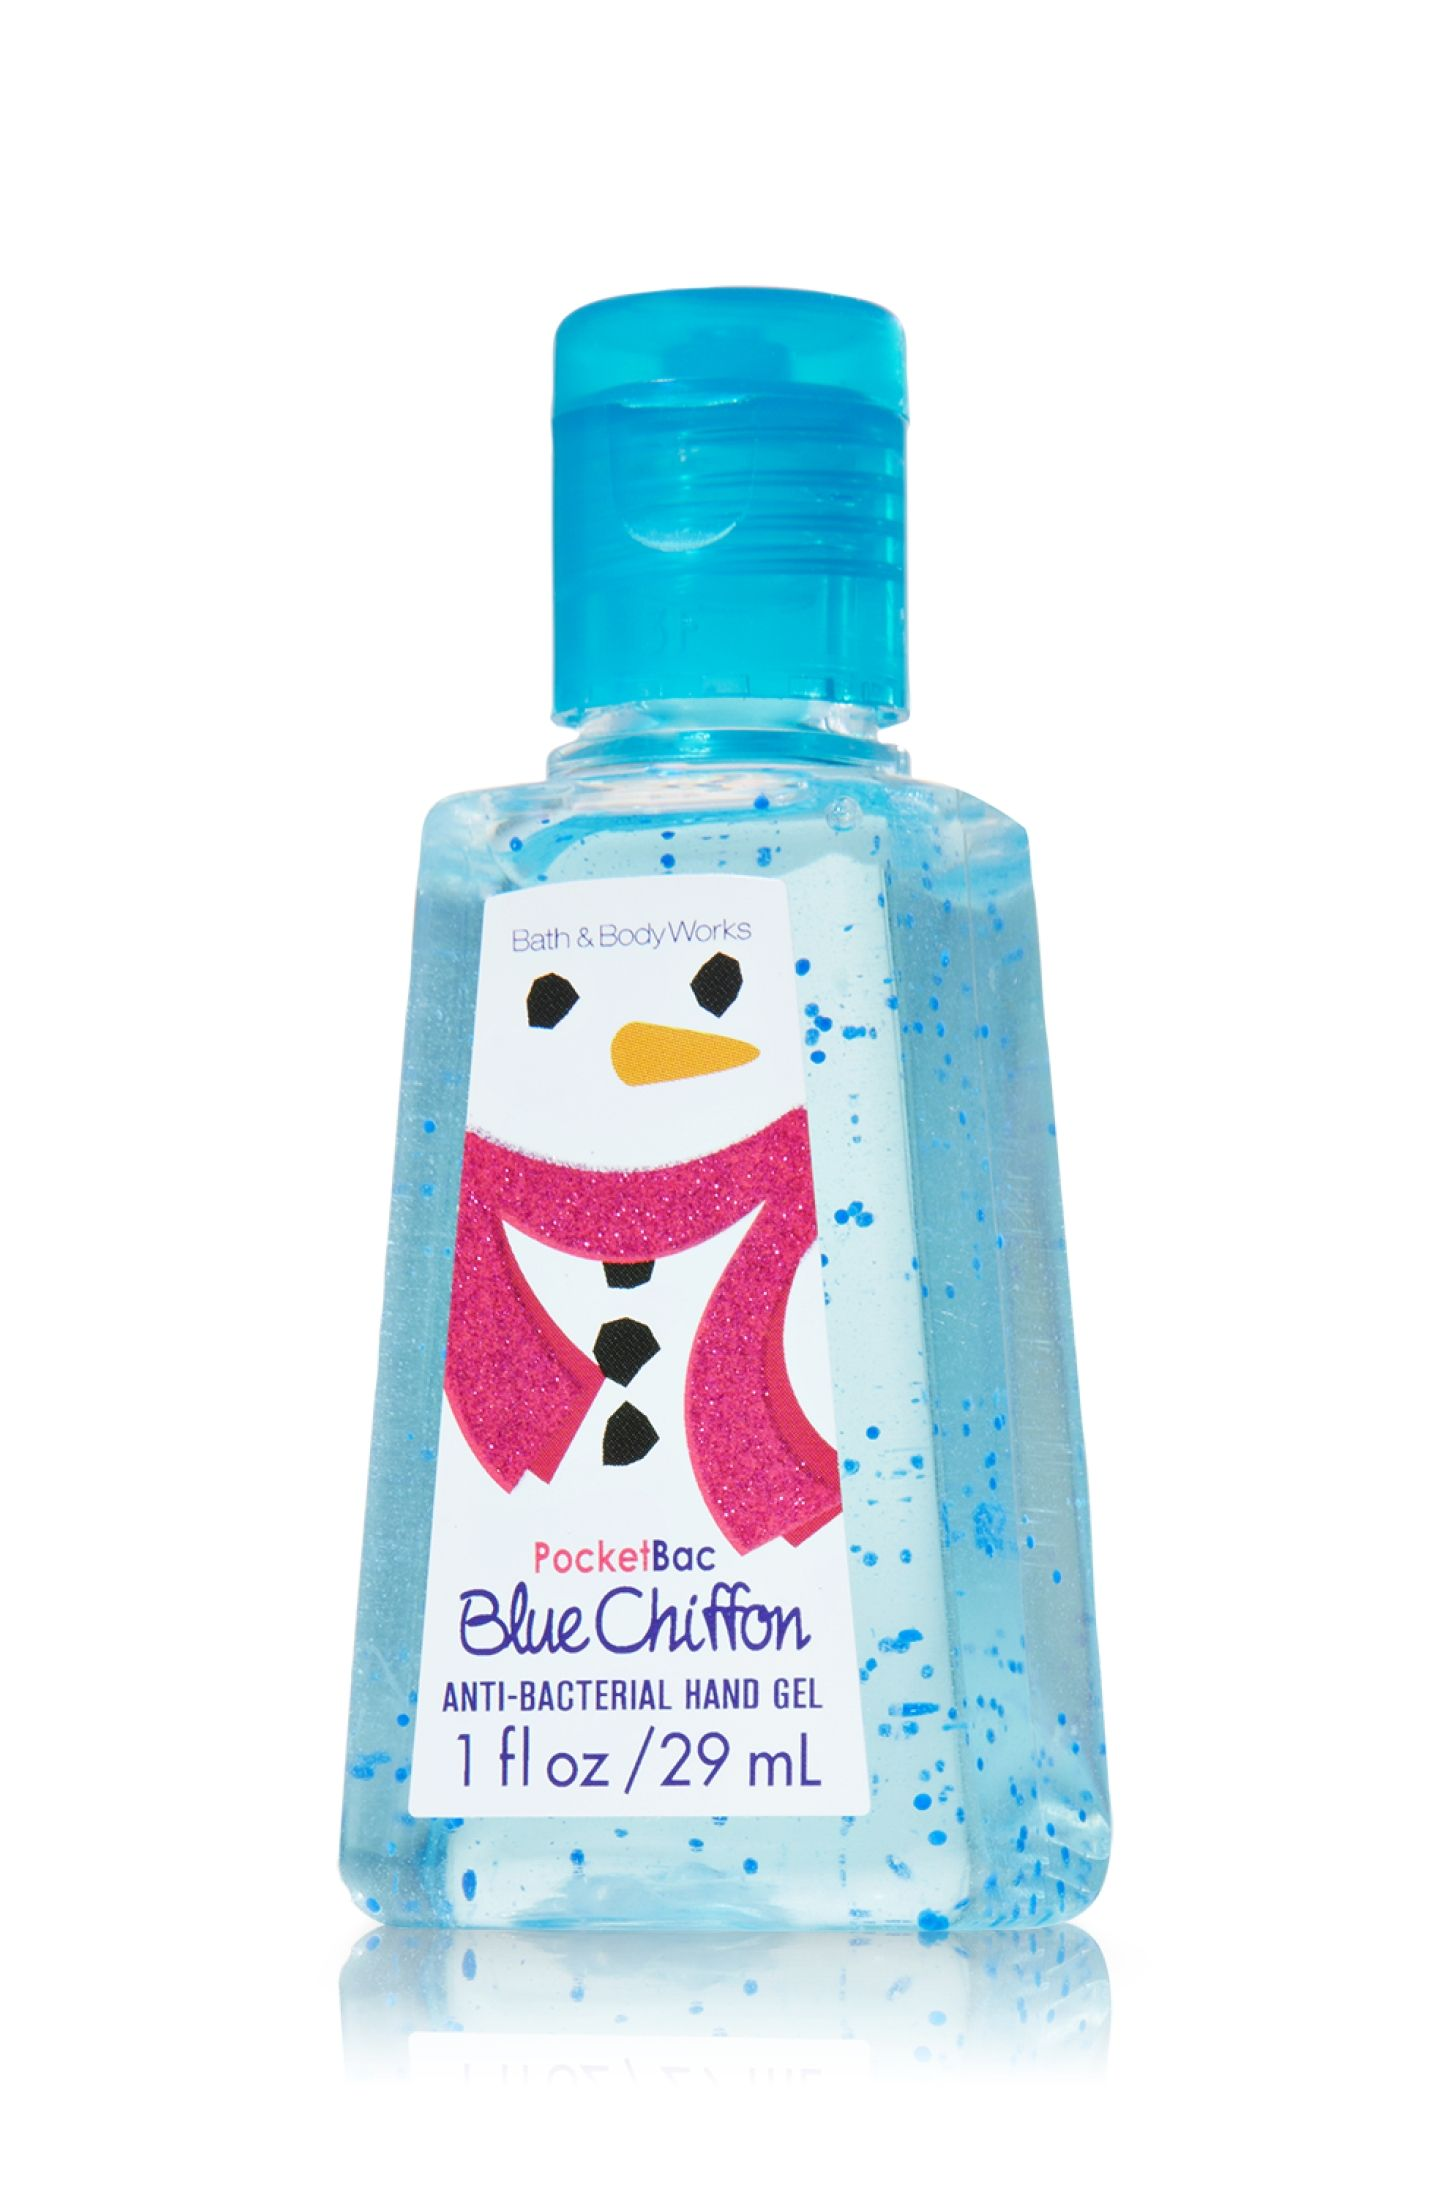 Blue Chiffon Pocketbac Sanitizing Hand Gel Anti Bacterial Bath